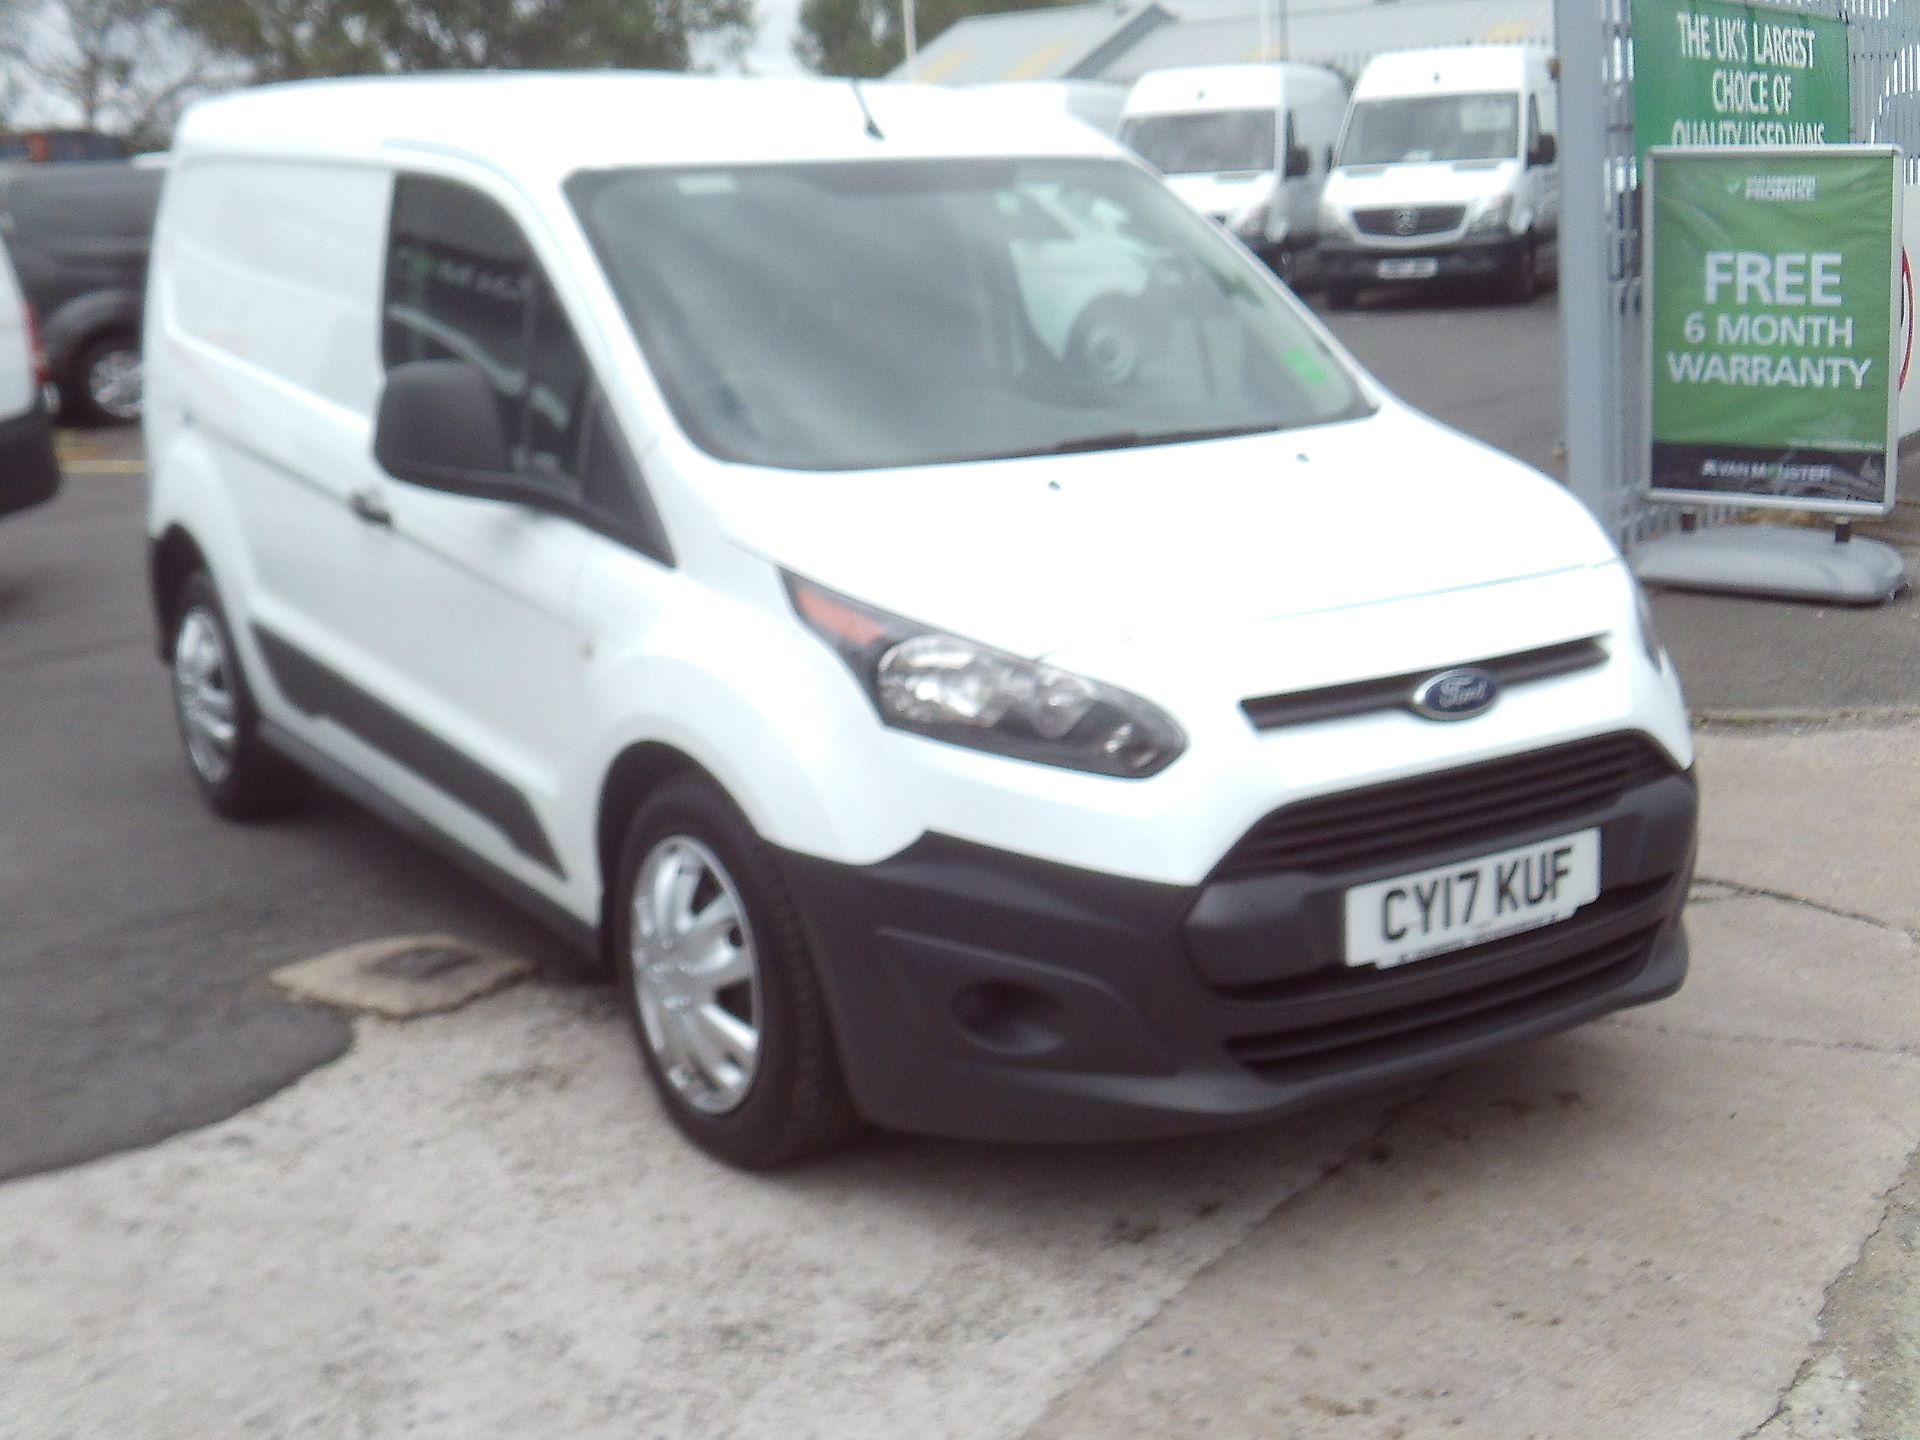 2017 Ford Transit Connect 220 L1 DIESEL 1.5 TDCi 100PS VAN EURO 6 (CY17KUF)